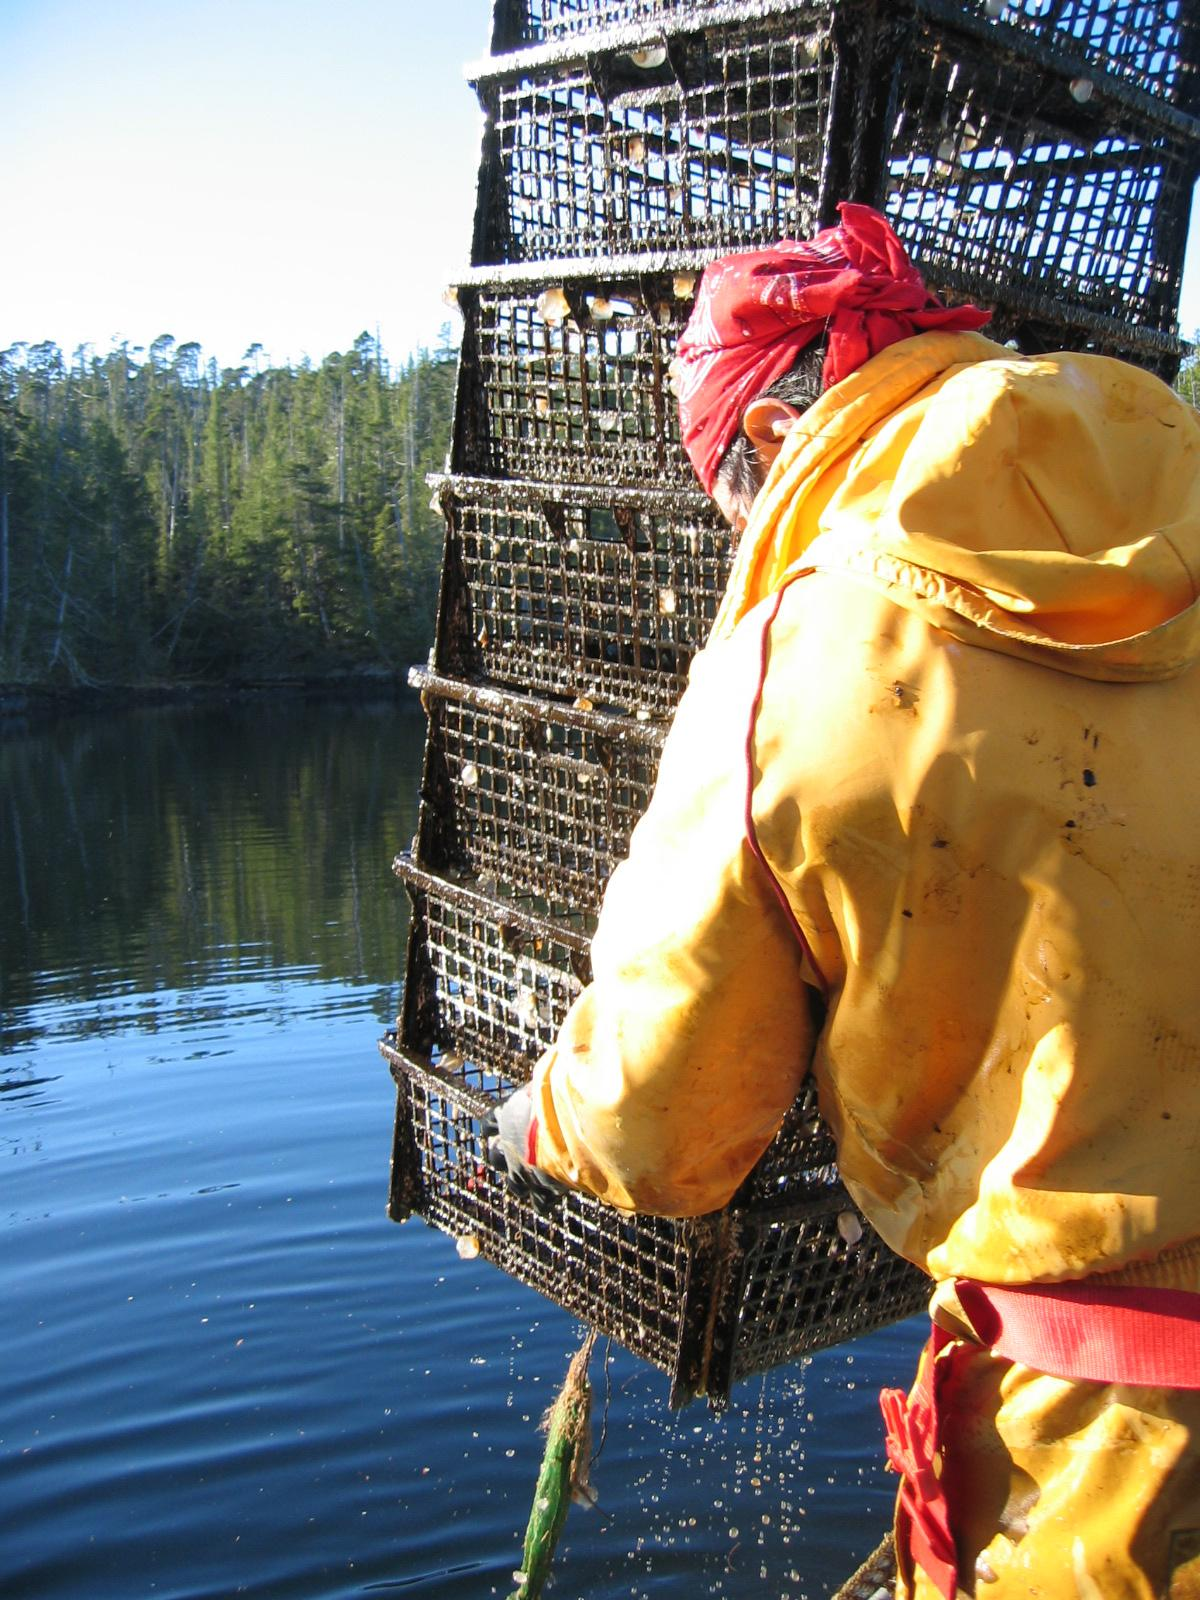 A person lifting a shellfish trap out of the water